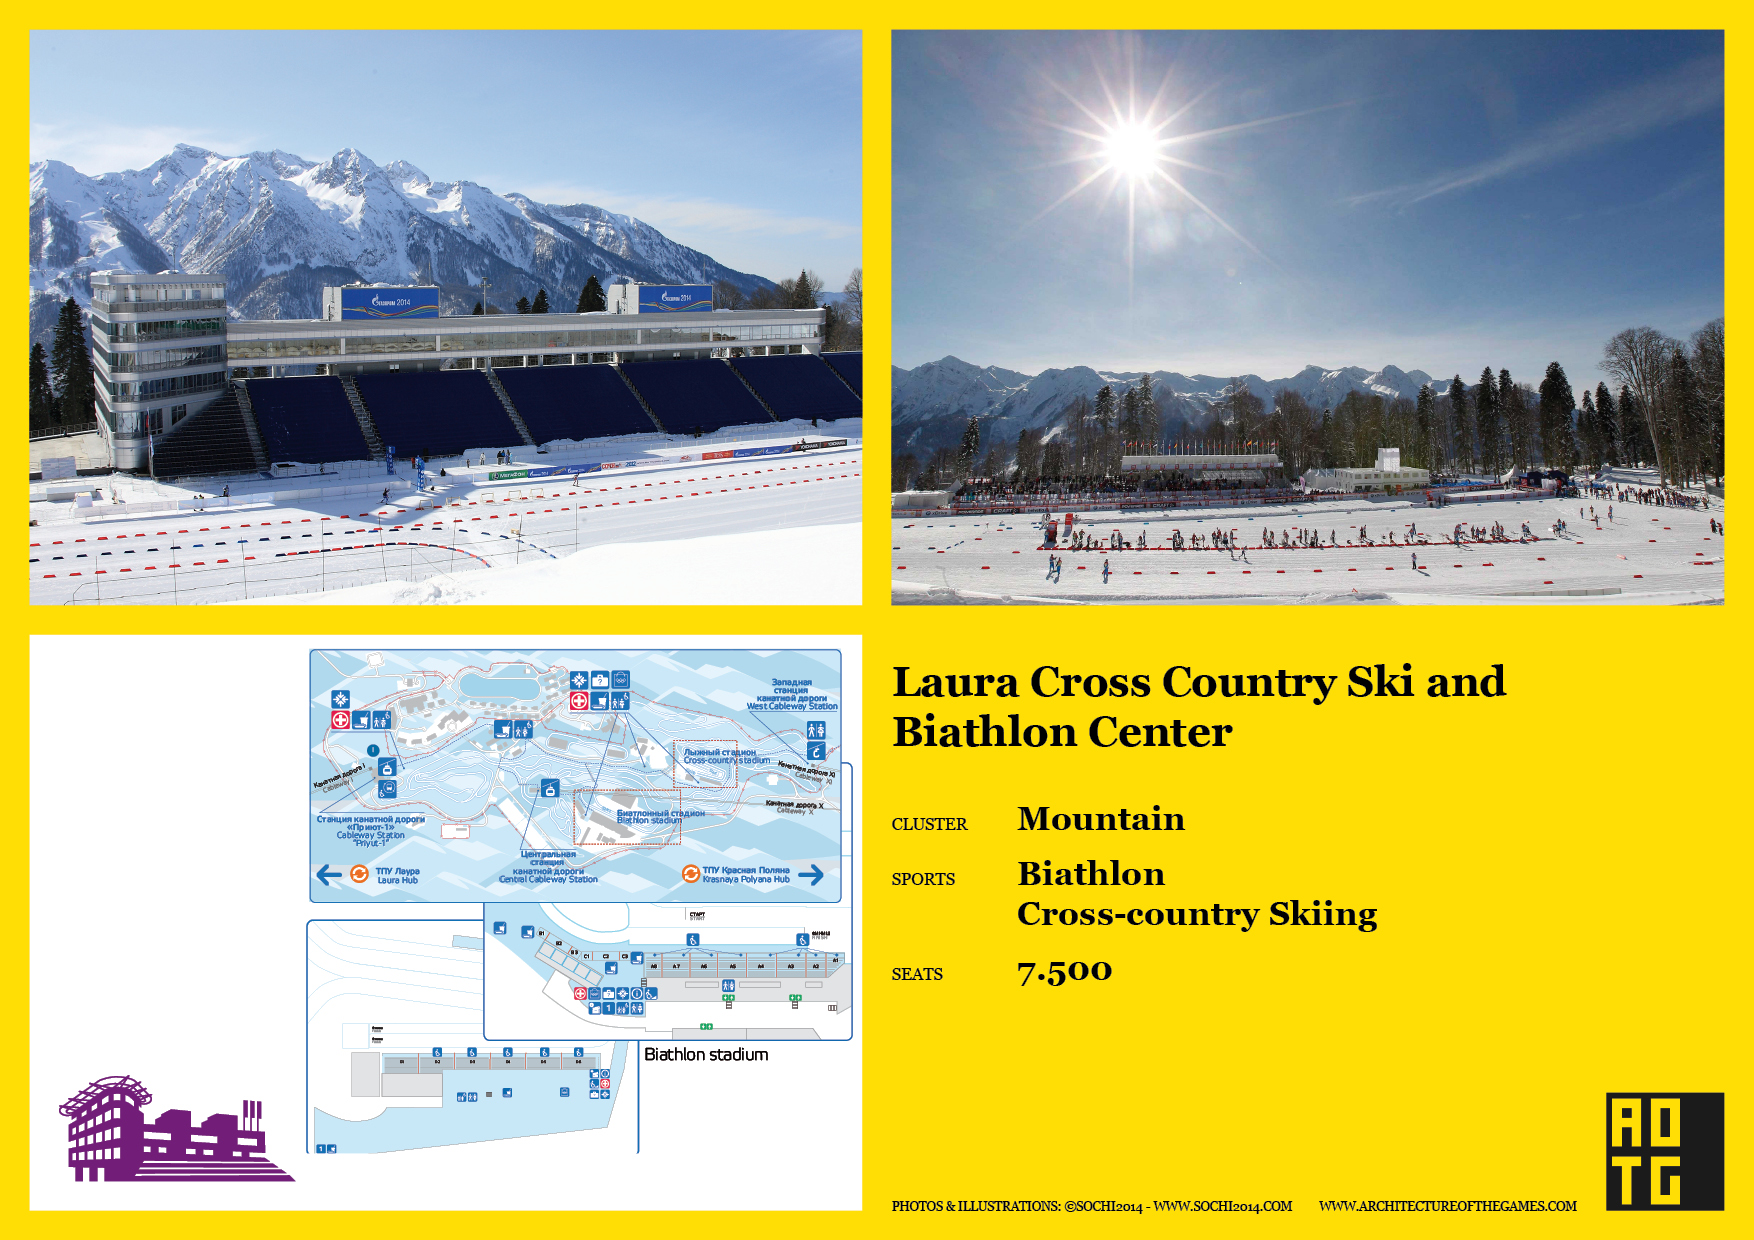 Laura Cross Country Ski and Biathlon Center